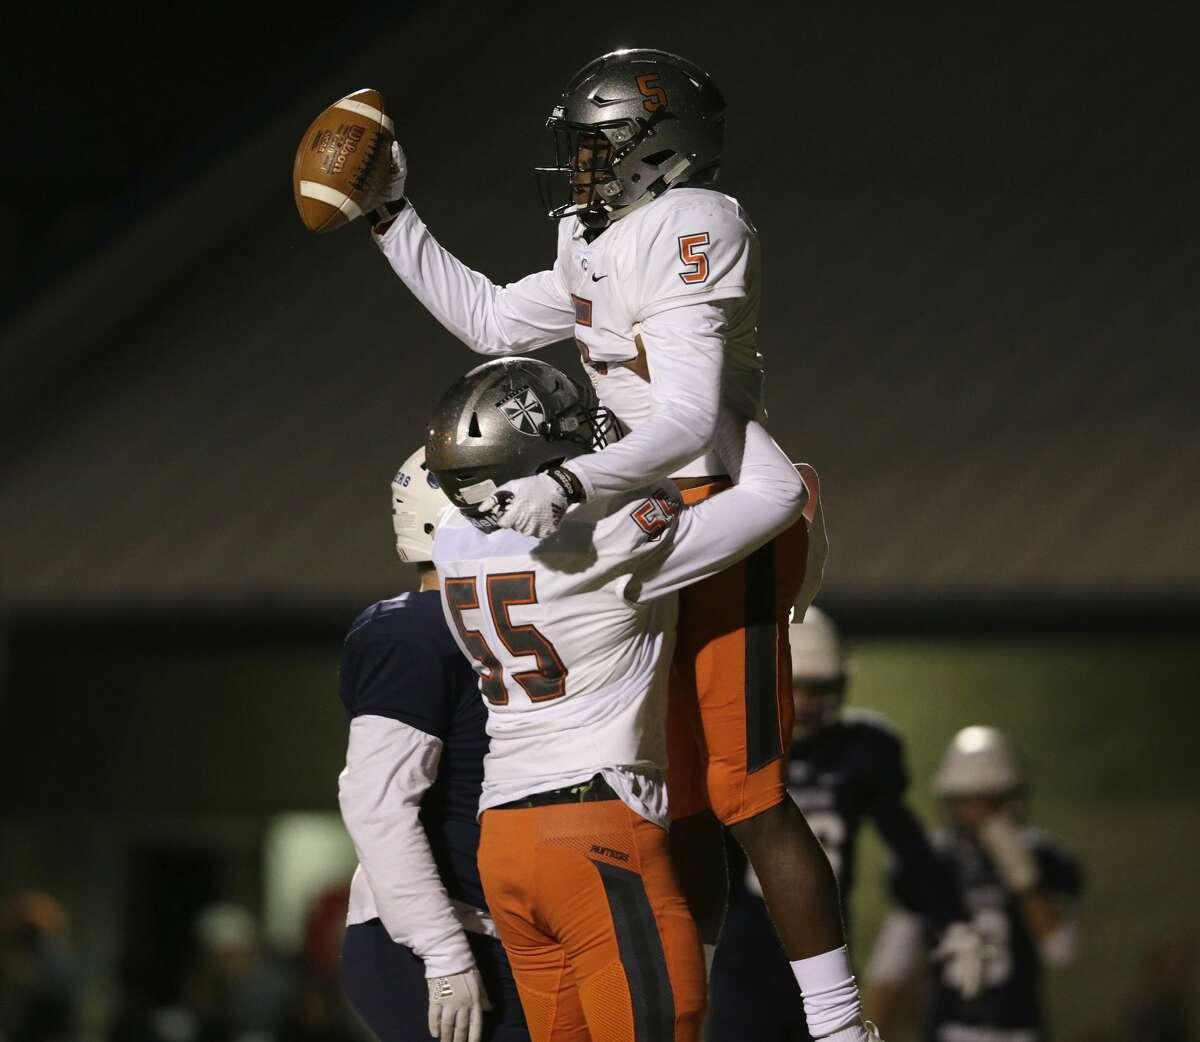 St. Pius X Panthers Jeremy Garcia (55) lifts St. Pius X Panthers Boobie Curry (5) in celebration after a touchdown in the first half during the high school football game between St. Pius X Panthers and the Concordia Lutheran Crusaders in Tomball, TX on Friday, October 27, 2017.